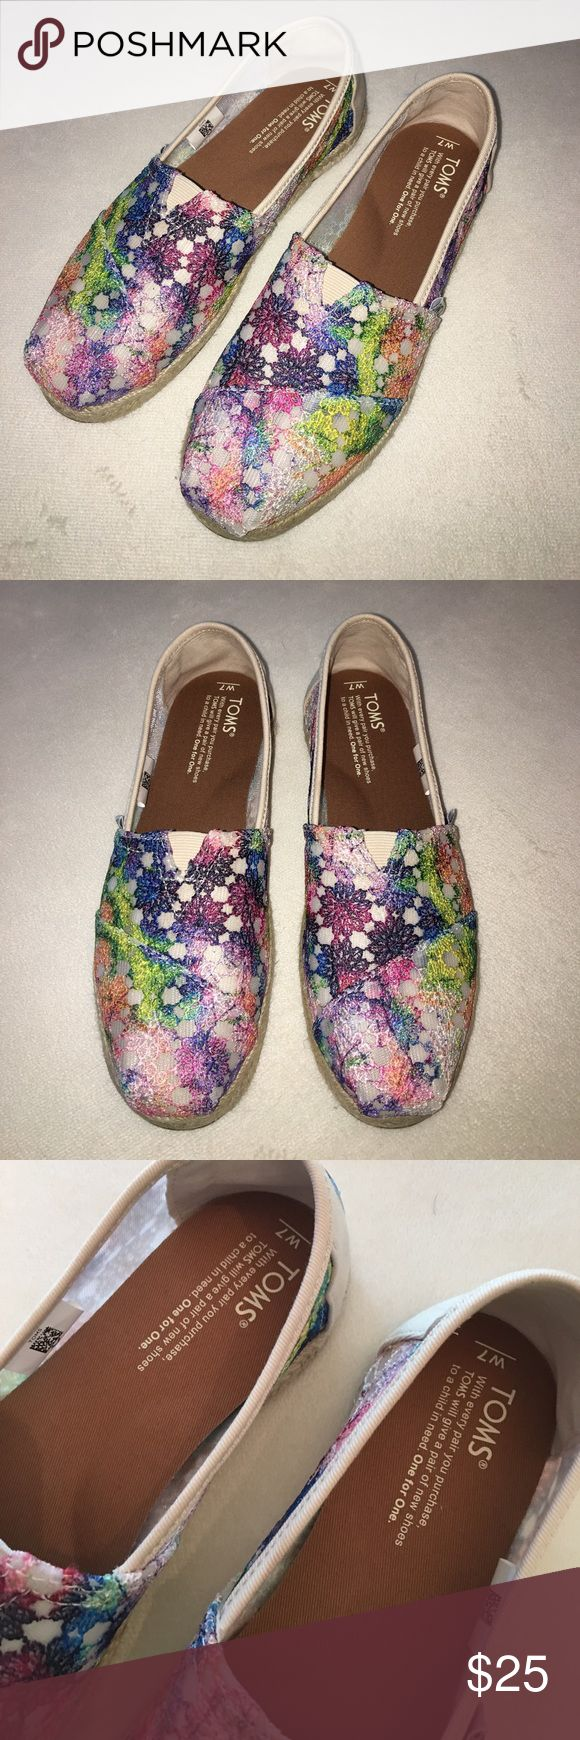 """NEW TOMS MULTI TIE DYE CROCHET WOMEN'S ESPADRILLES New without tags! With their bright crochet tie dye upper, these Classic Alpargatas add a little pop to any outfit. The molded insole provides all-day comfort. Multi tie dye crochet upper Traditional Alpargata style with elastic """"v"""" for easy fit Vegan Molded removable insole, cotton twill sock liner that fights bacteria Natural jute rope sole TOMS Exclusives only available on TOMS.com Toms Shoes"""